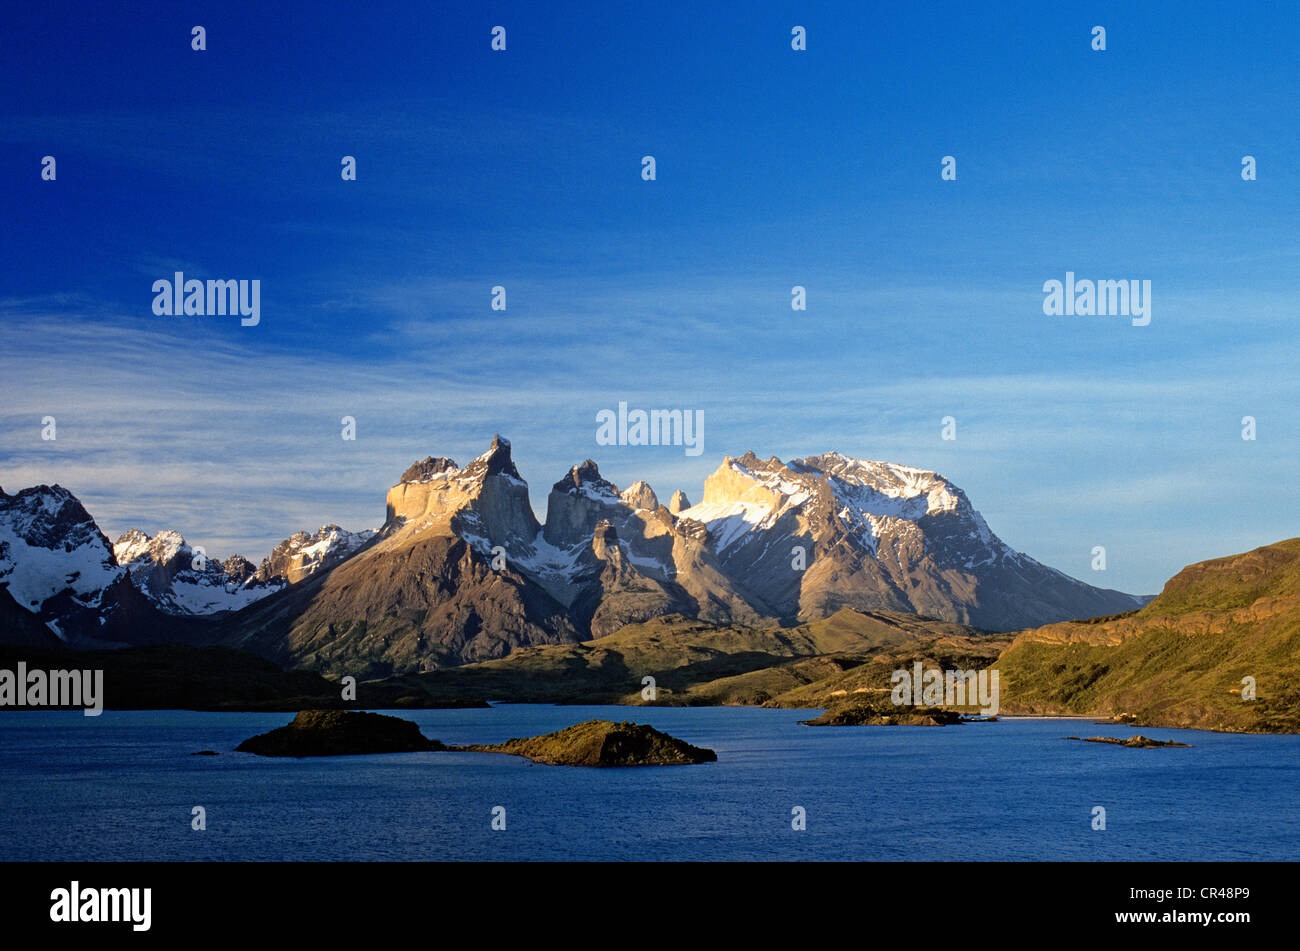 Chile, Magallanes and Antartica Chilena Region, Torres del paine National Park, Pehoe Lake and the massifs of Cuernos - Stock Image